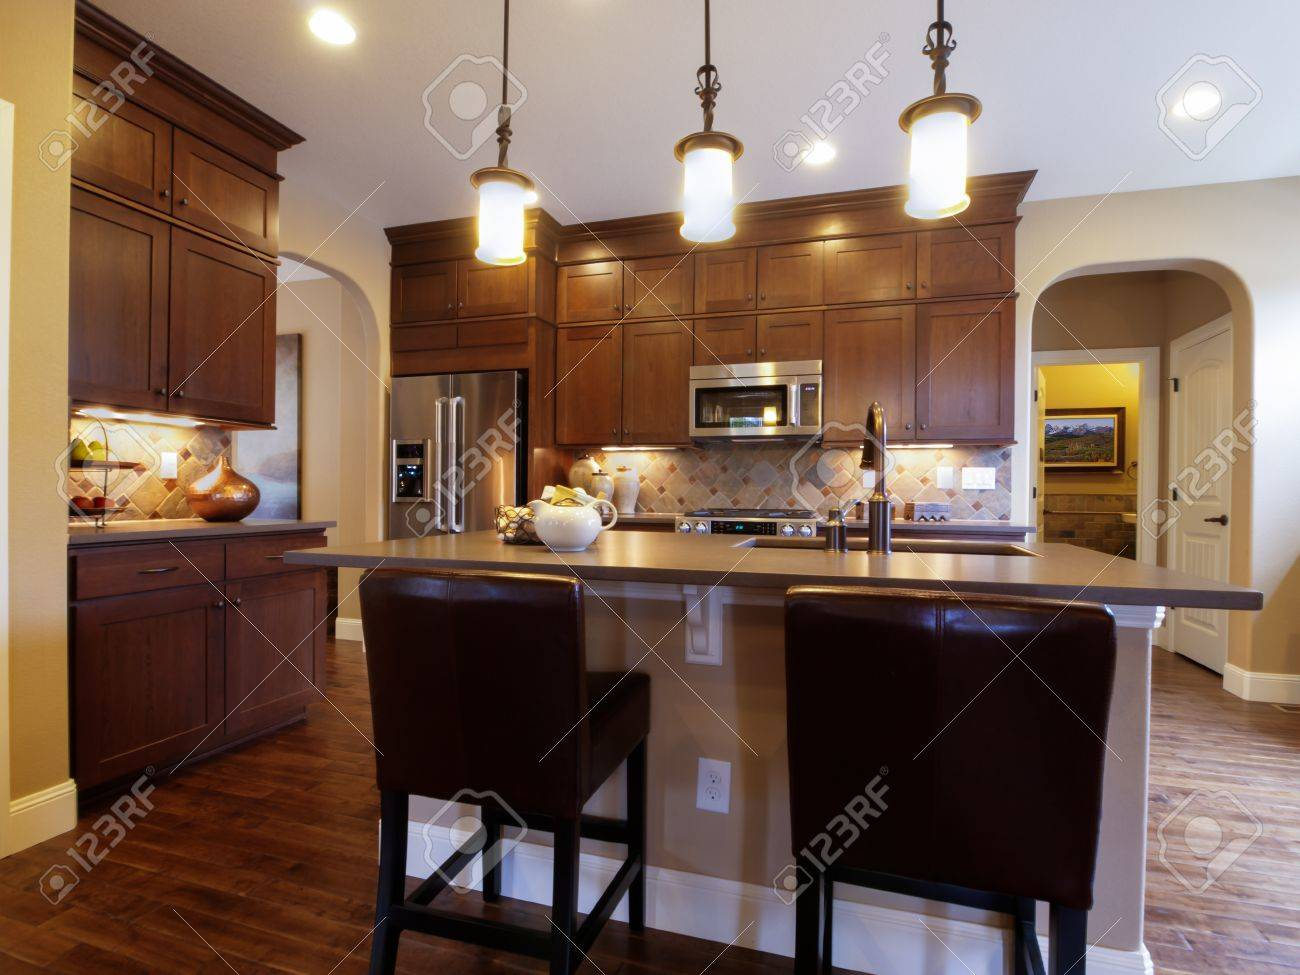 Modern kitchen with wood cabinets and stainless appliances. Stock Photo - 15079358